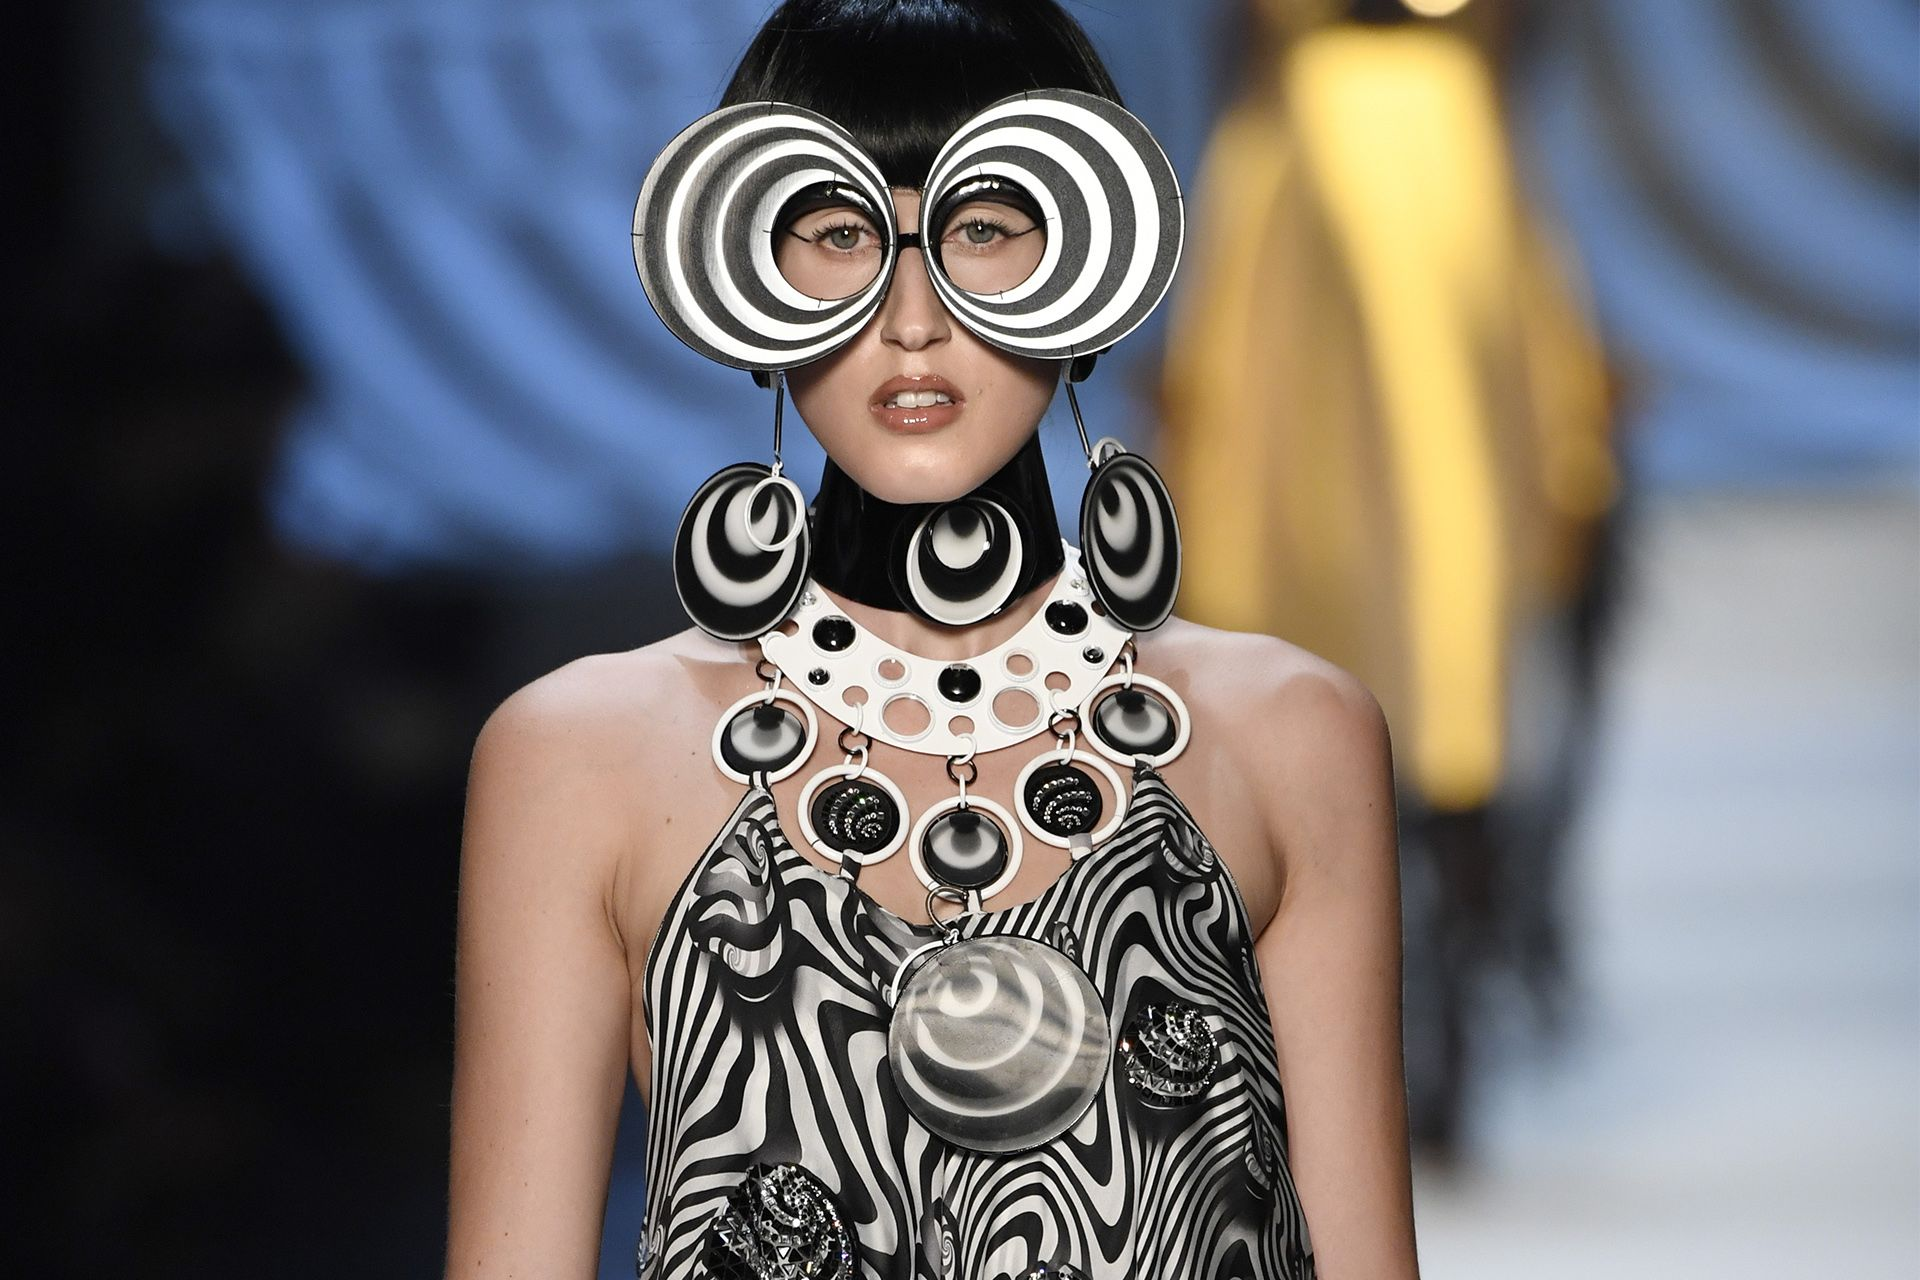 d34cd0ec31 Five highlights from Paris haute couture fashion week